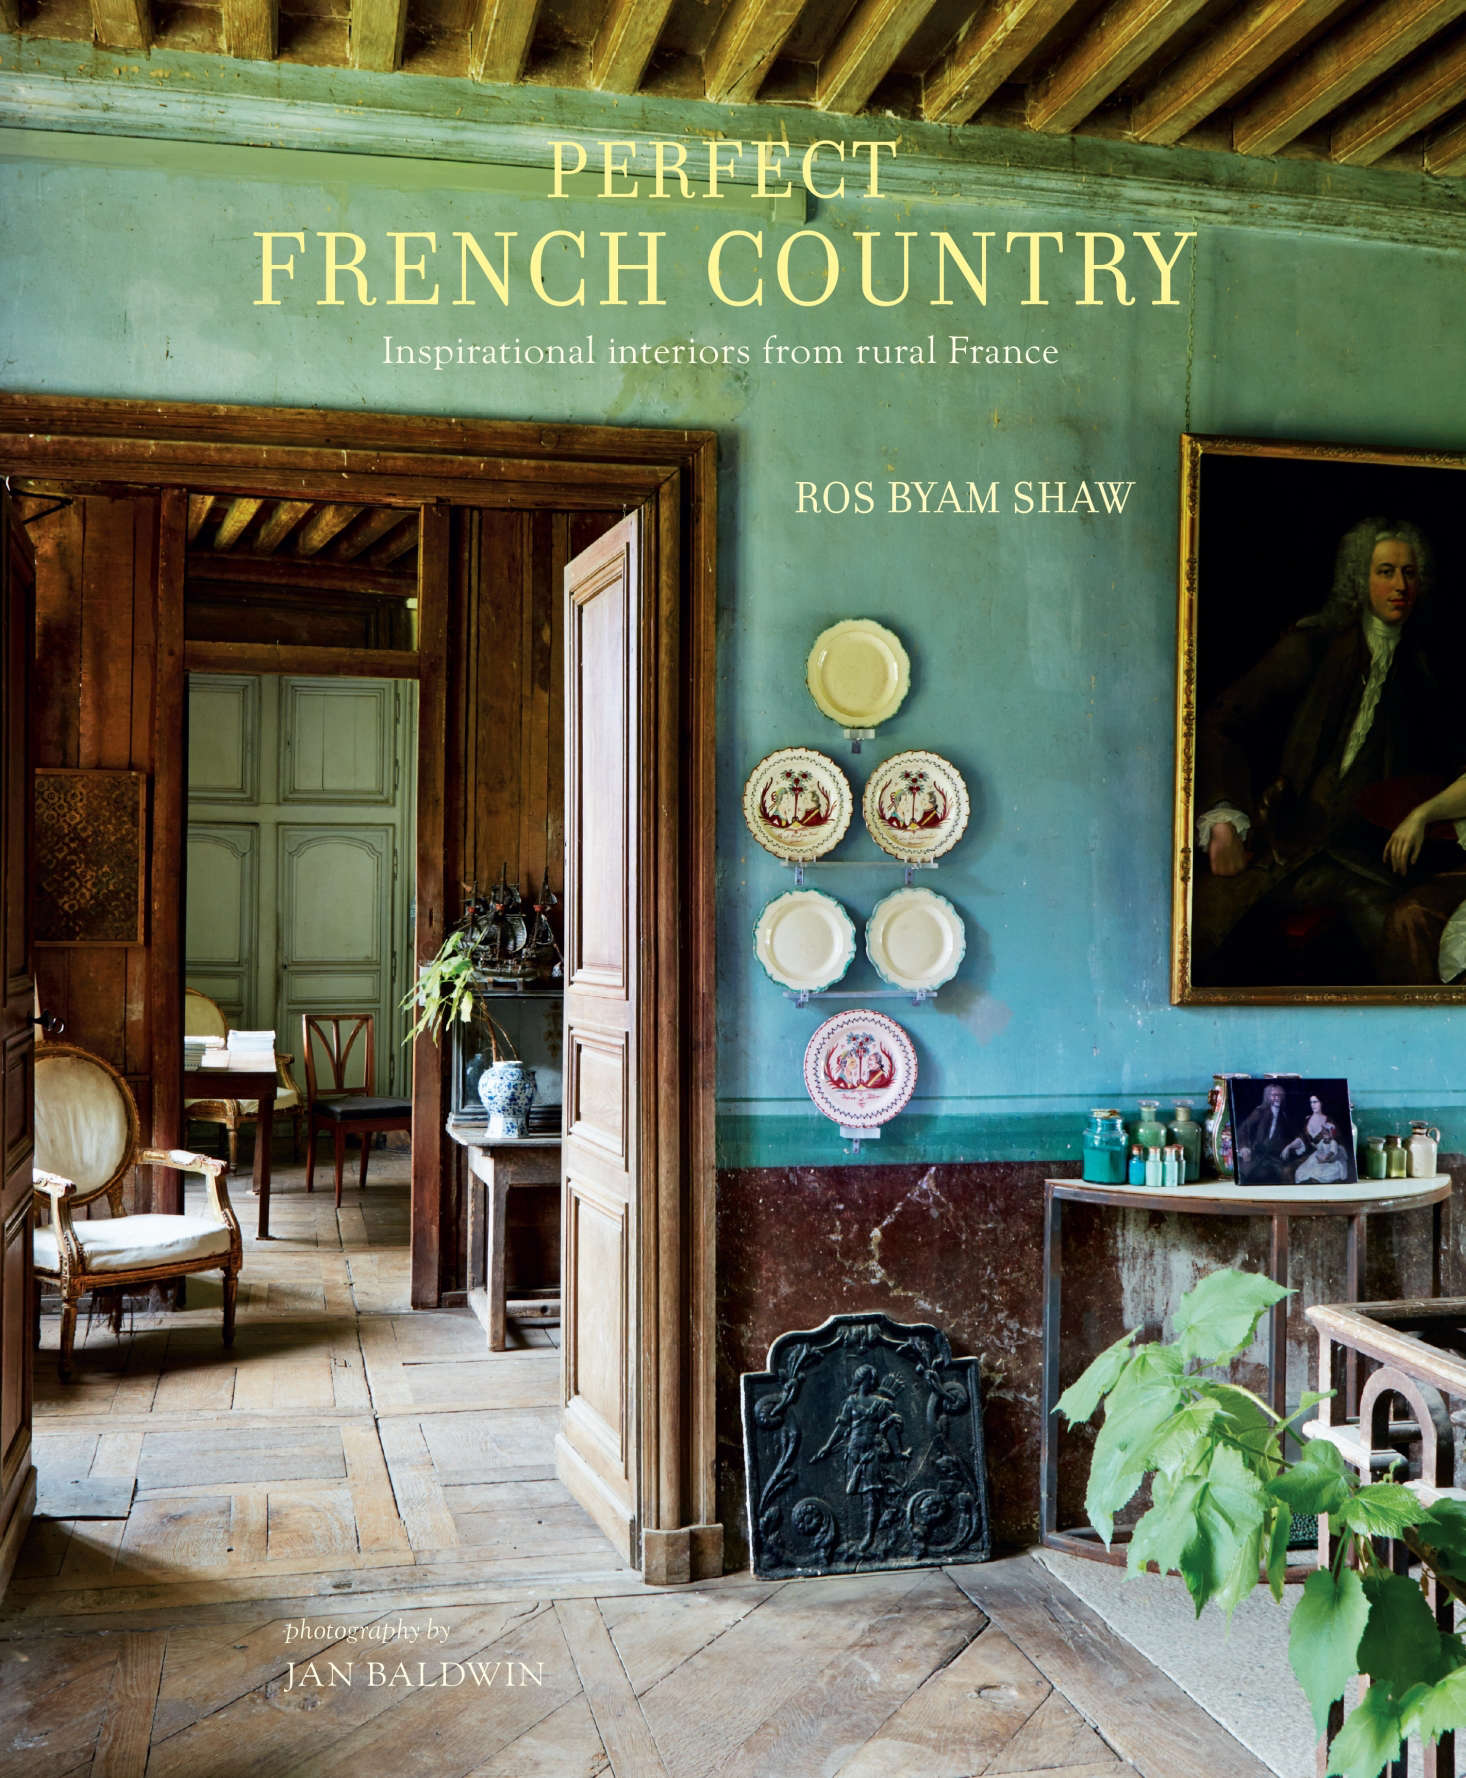 Required Reading: Perfect French Country, Inspirational